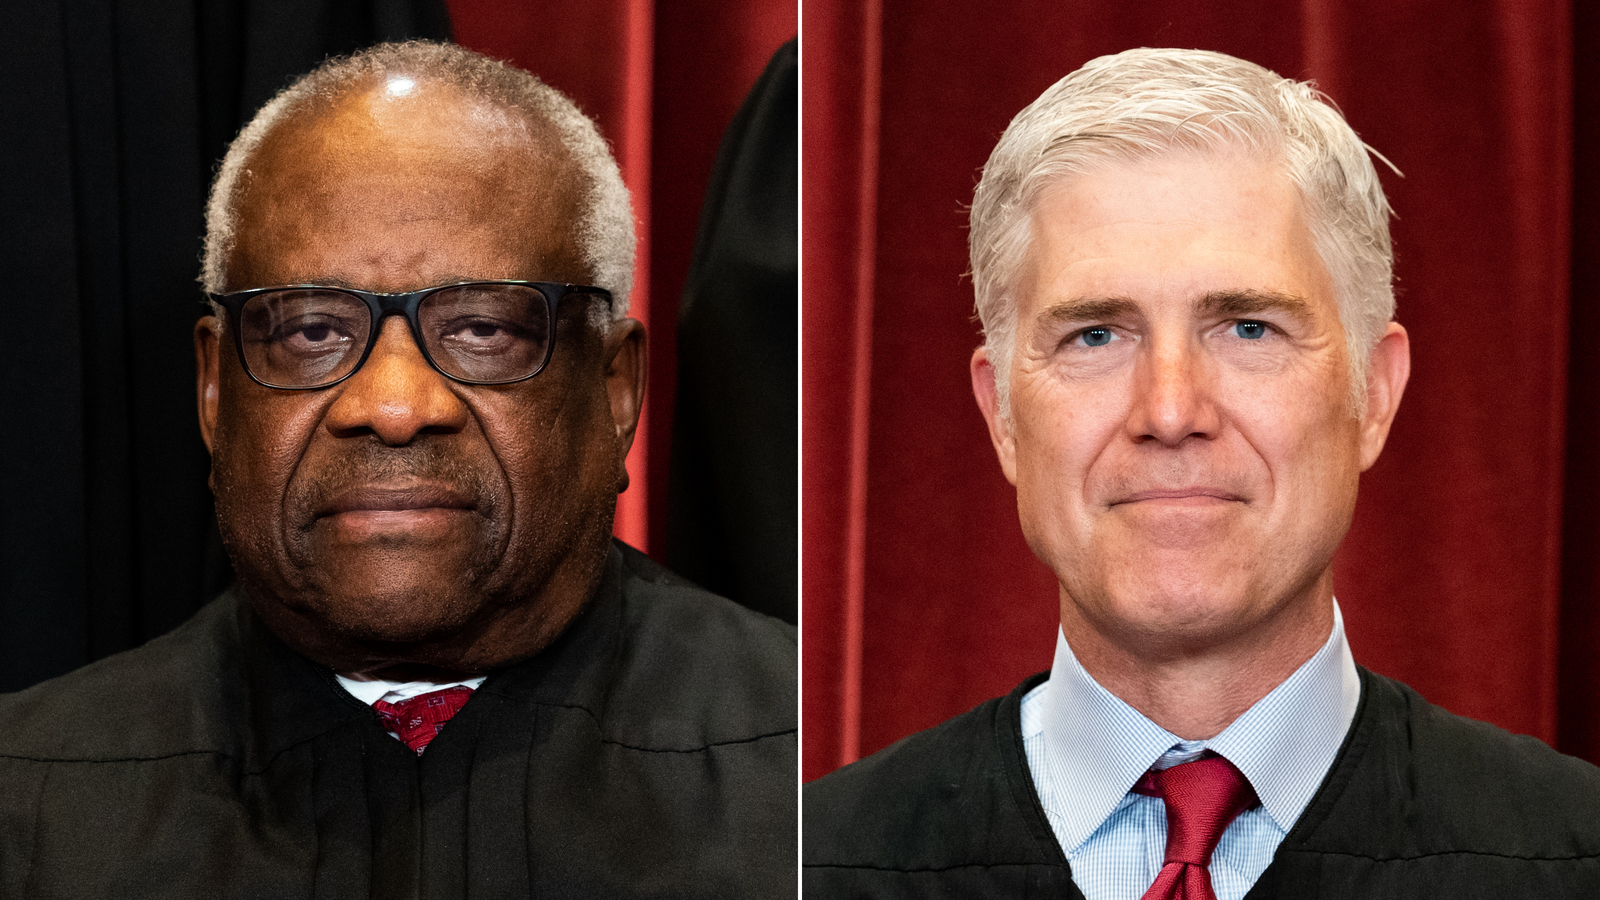 Justices Gorsuch and Thomas call to revisit landmark First Amendment case New York Times v. Sullivan